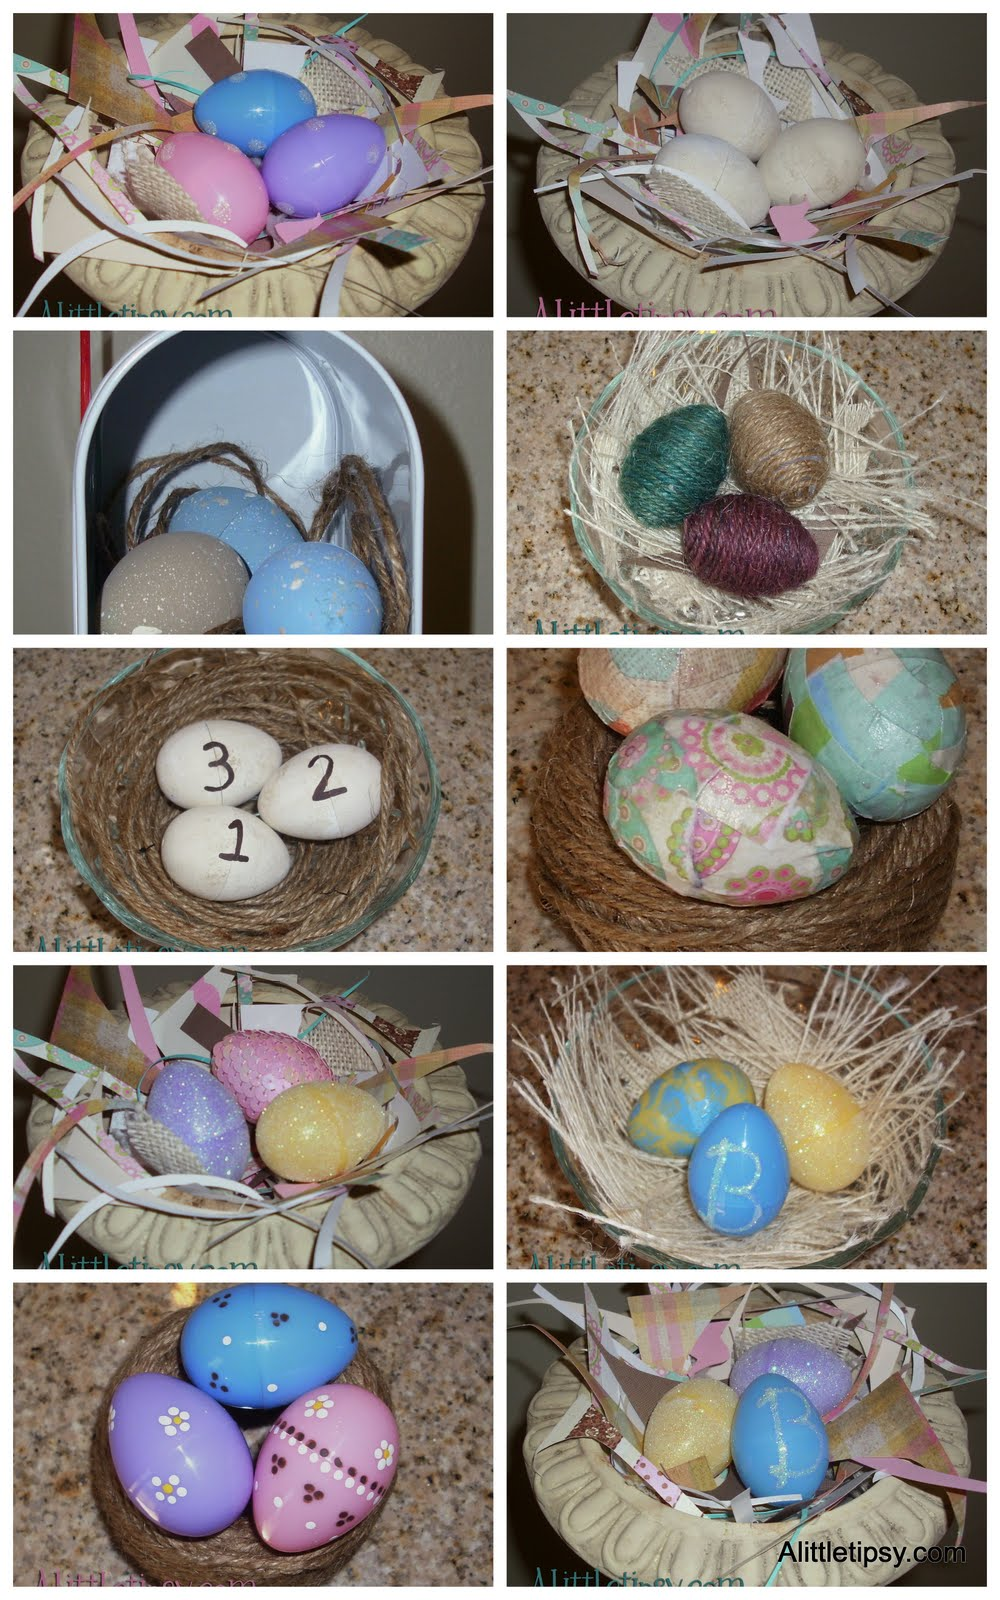 11 Ways To Decorate Plastic Easter Eggs A Little Tipsy